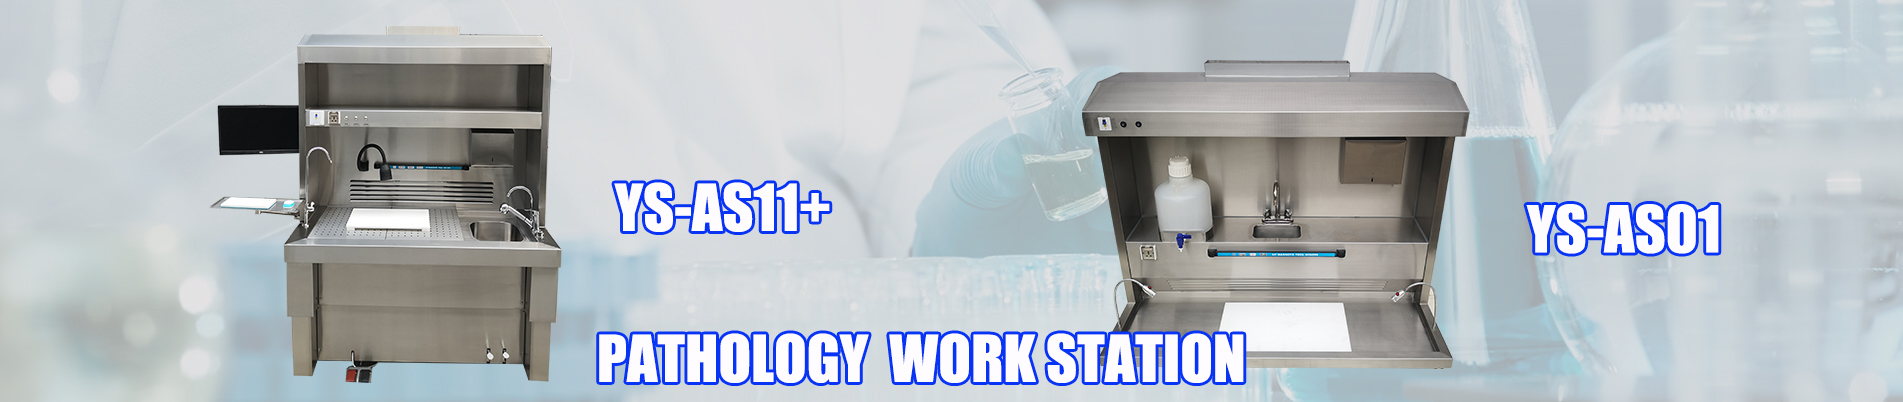 Pathology work station